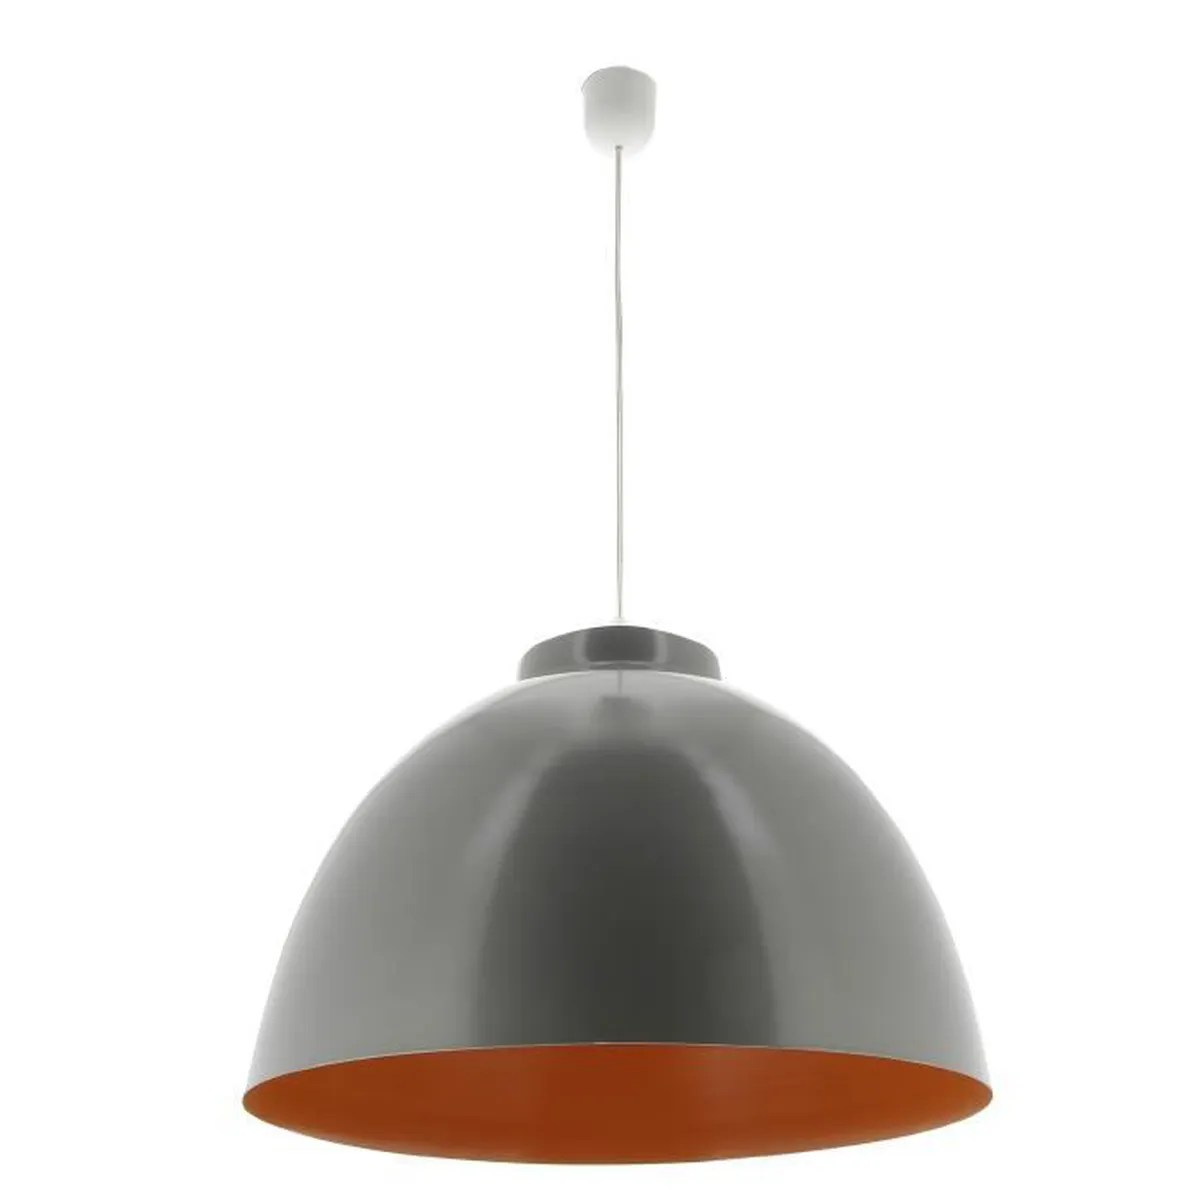 Suspension Luminaire Grand Diametre Suspension Luminaire Grand Diametre Achat Vente